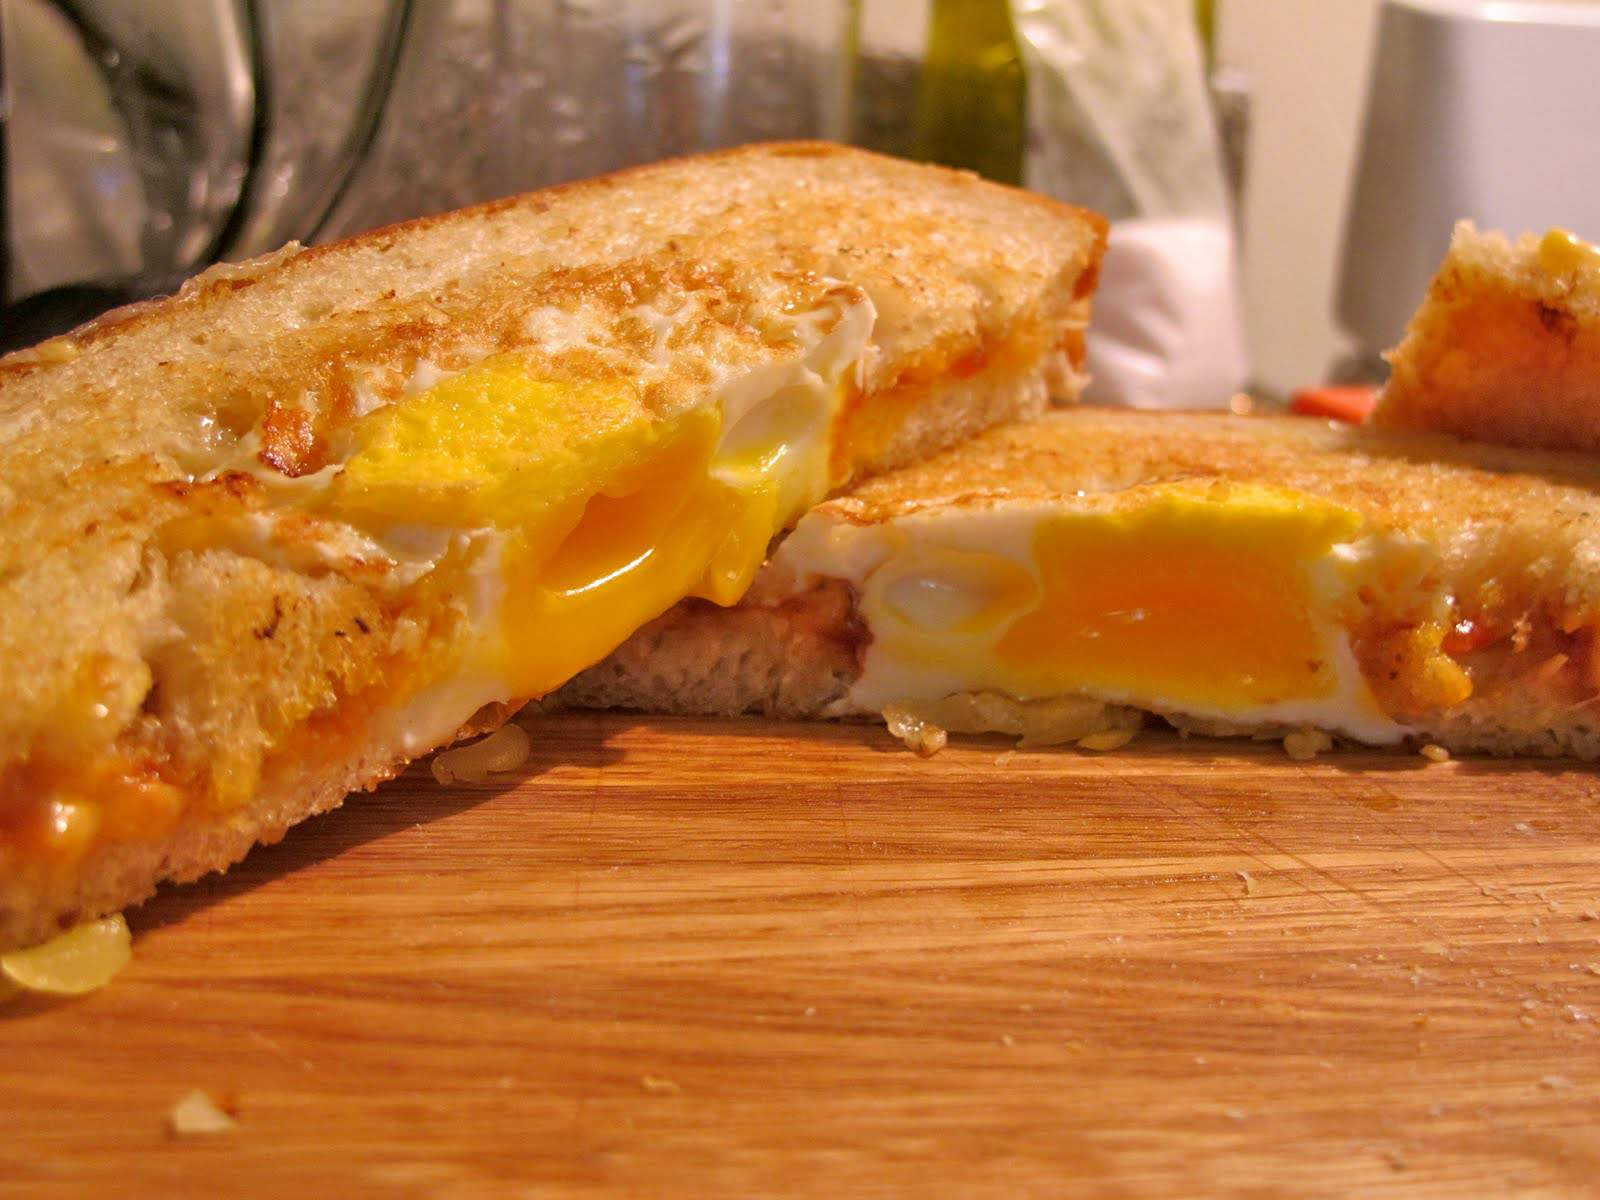 Tomato Chutney, Fried Egg, and Gruyere Grilled Cheese